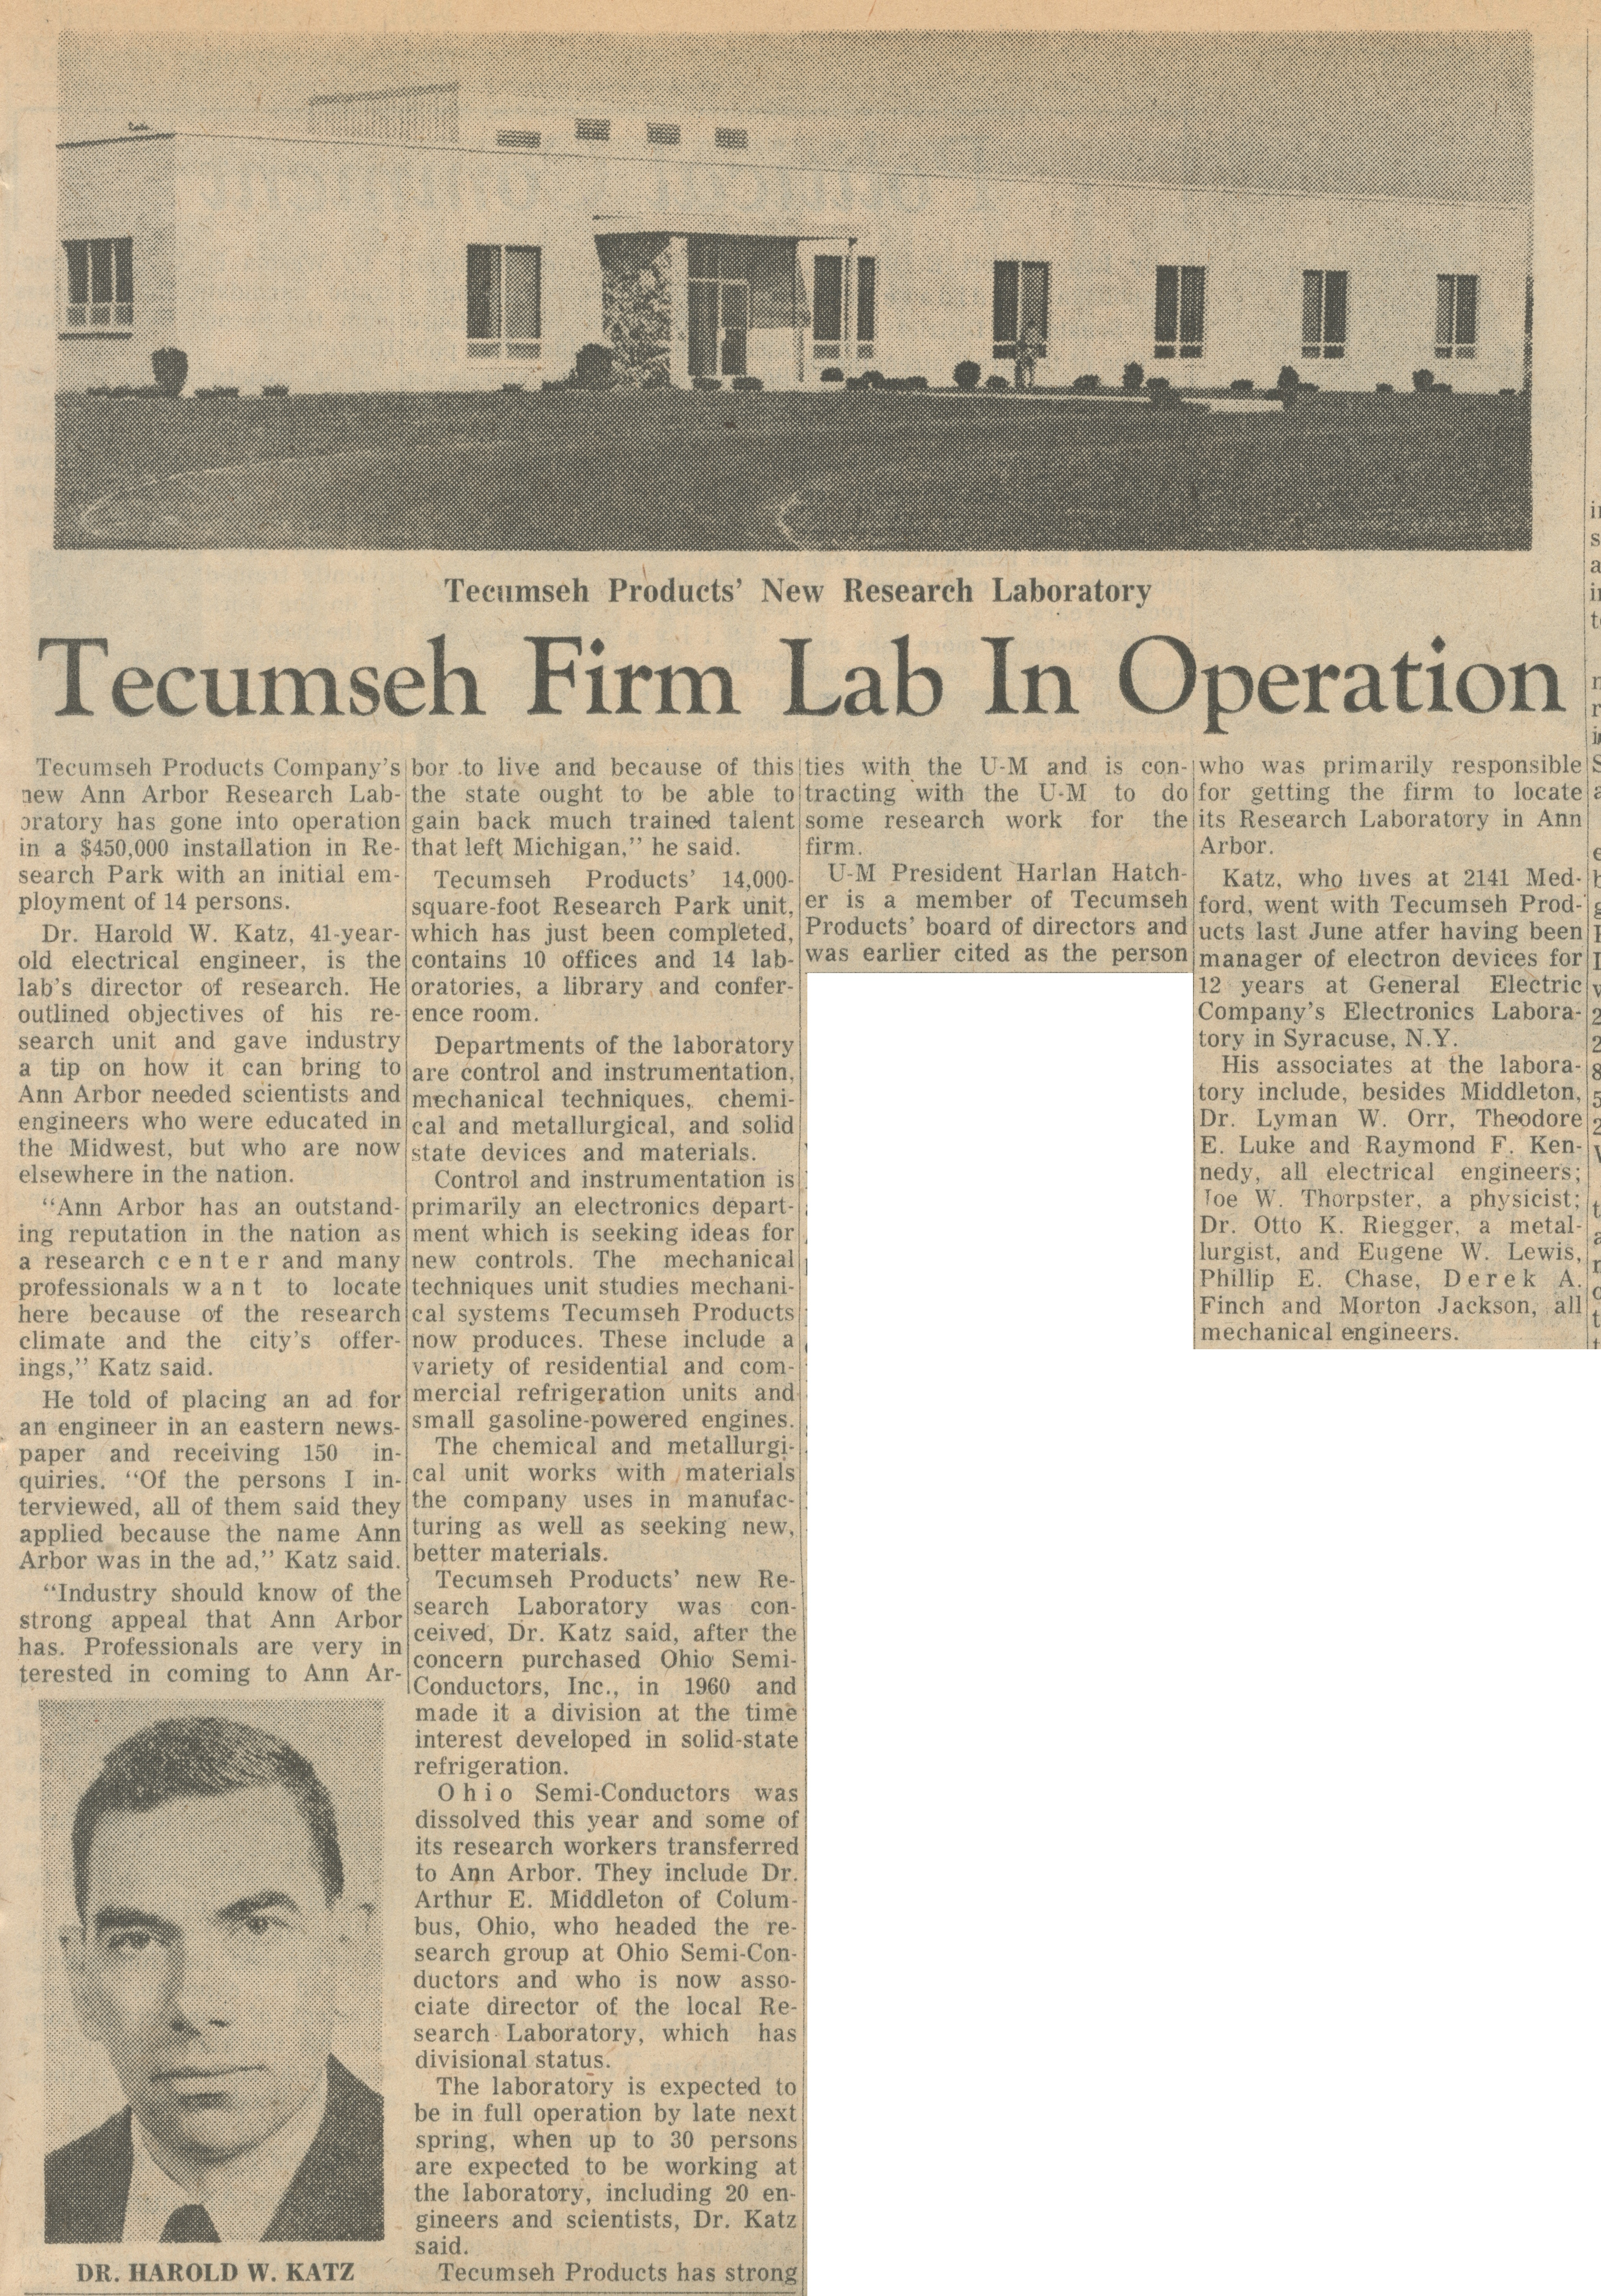 Tecumseh Firm Lab In Operation image